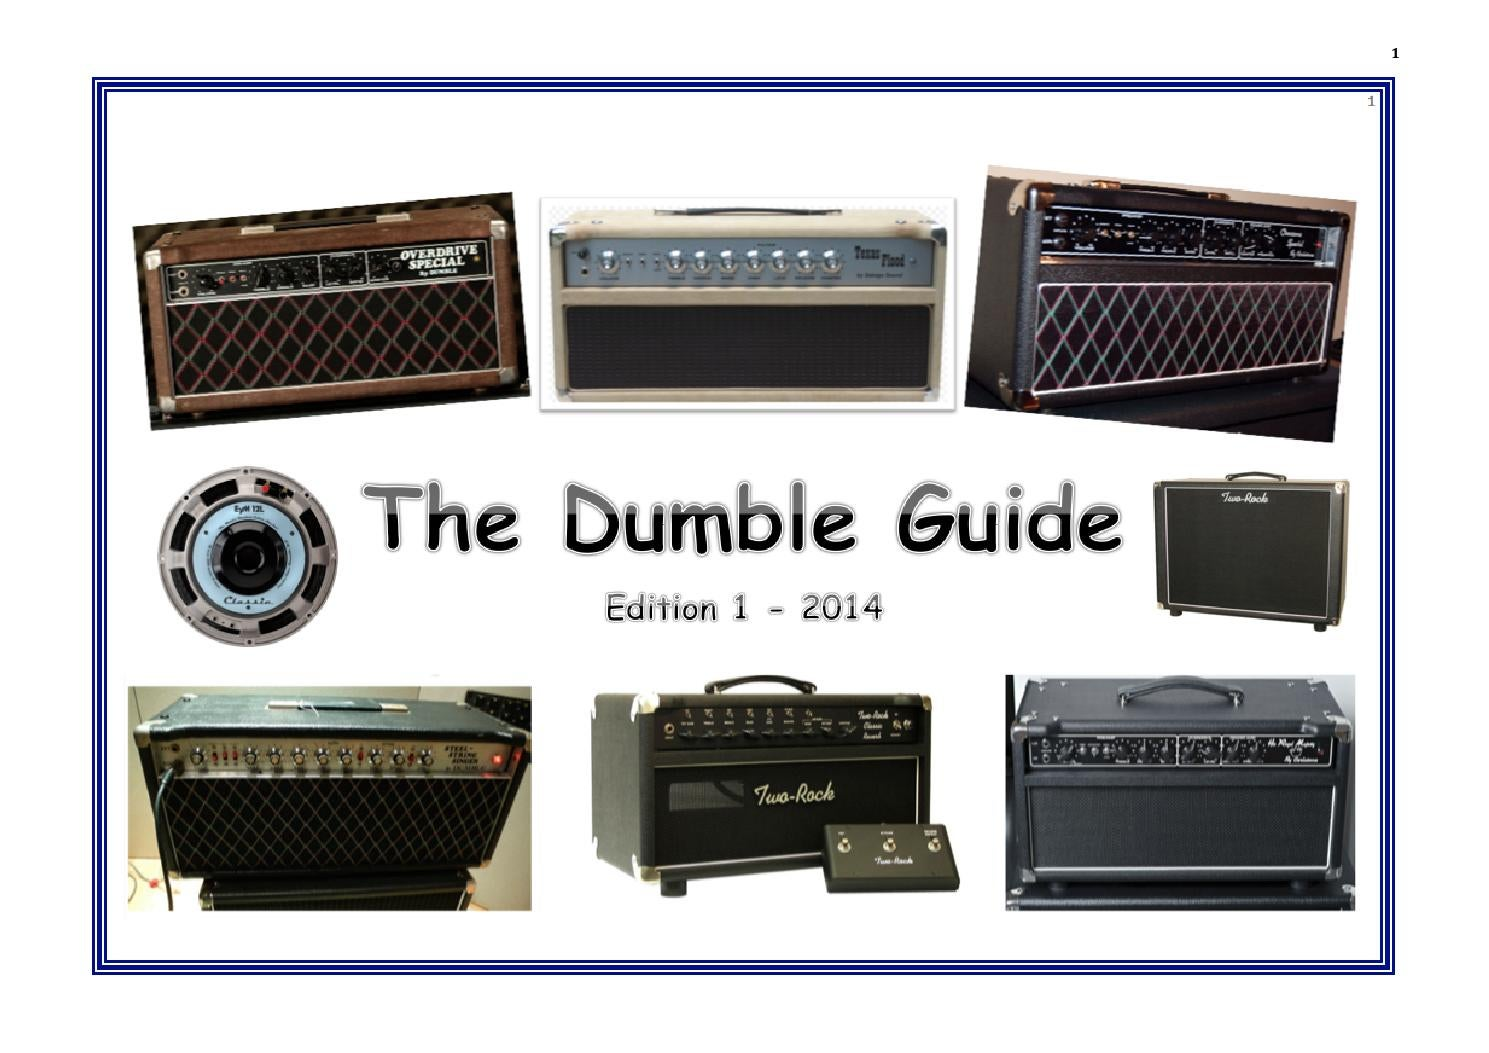 the dumble guide edition 1 2014 by the dumble guide issuu rh issuu com Dual Amp Wiring Diagram Dual Amp Wiring Diagram